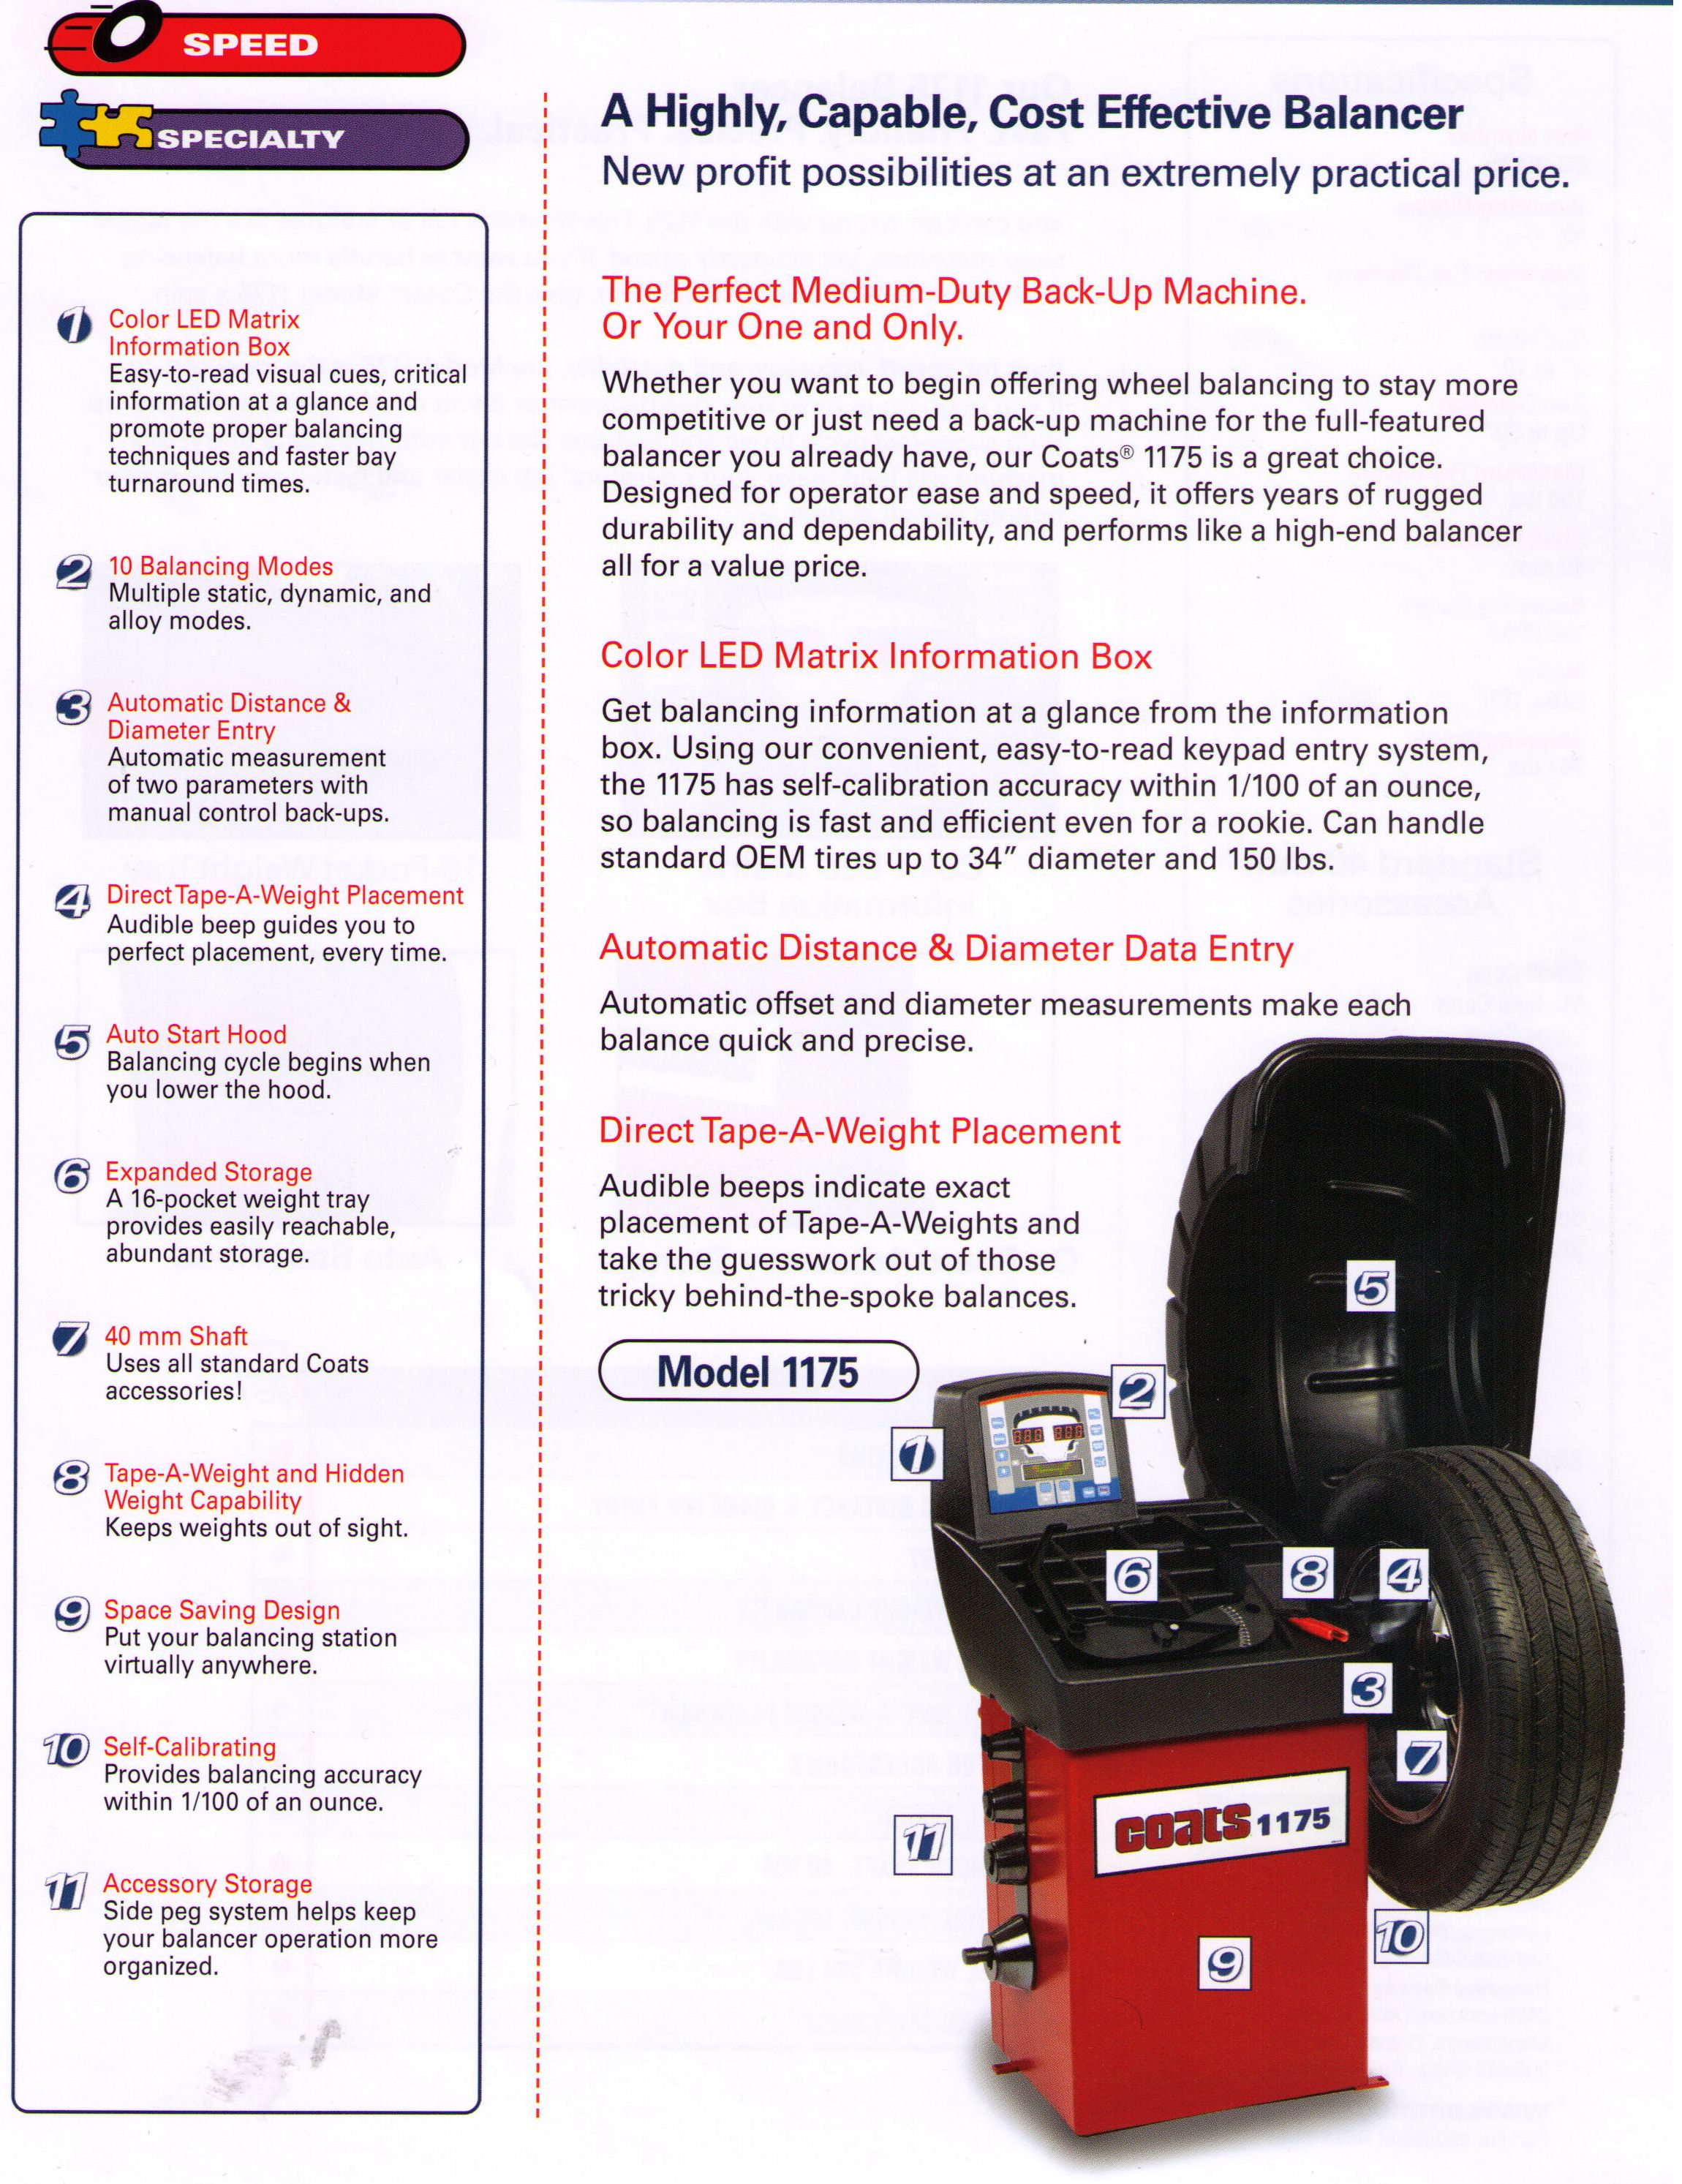 Specifications Model 1175 Coats Automotive Wheel Balancer